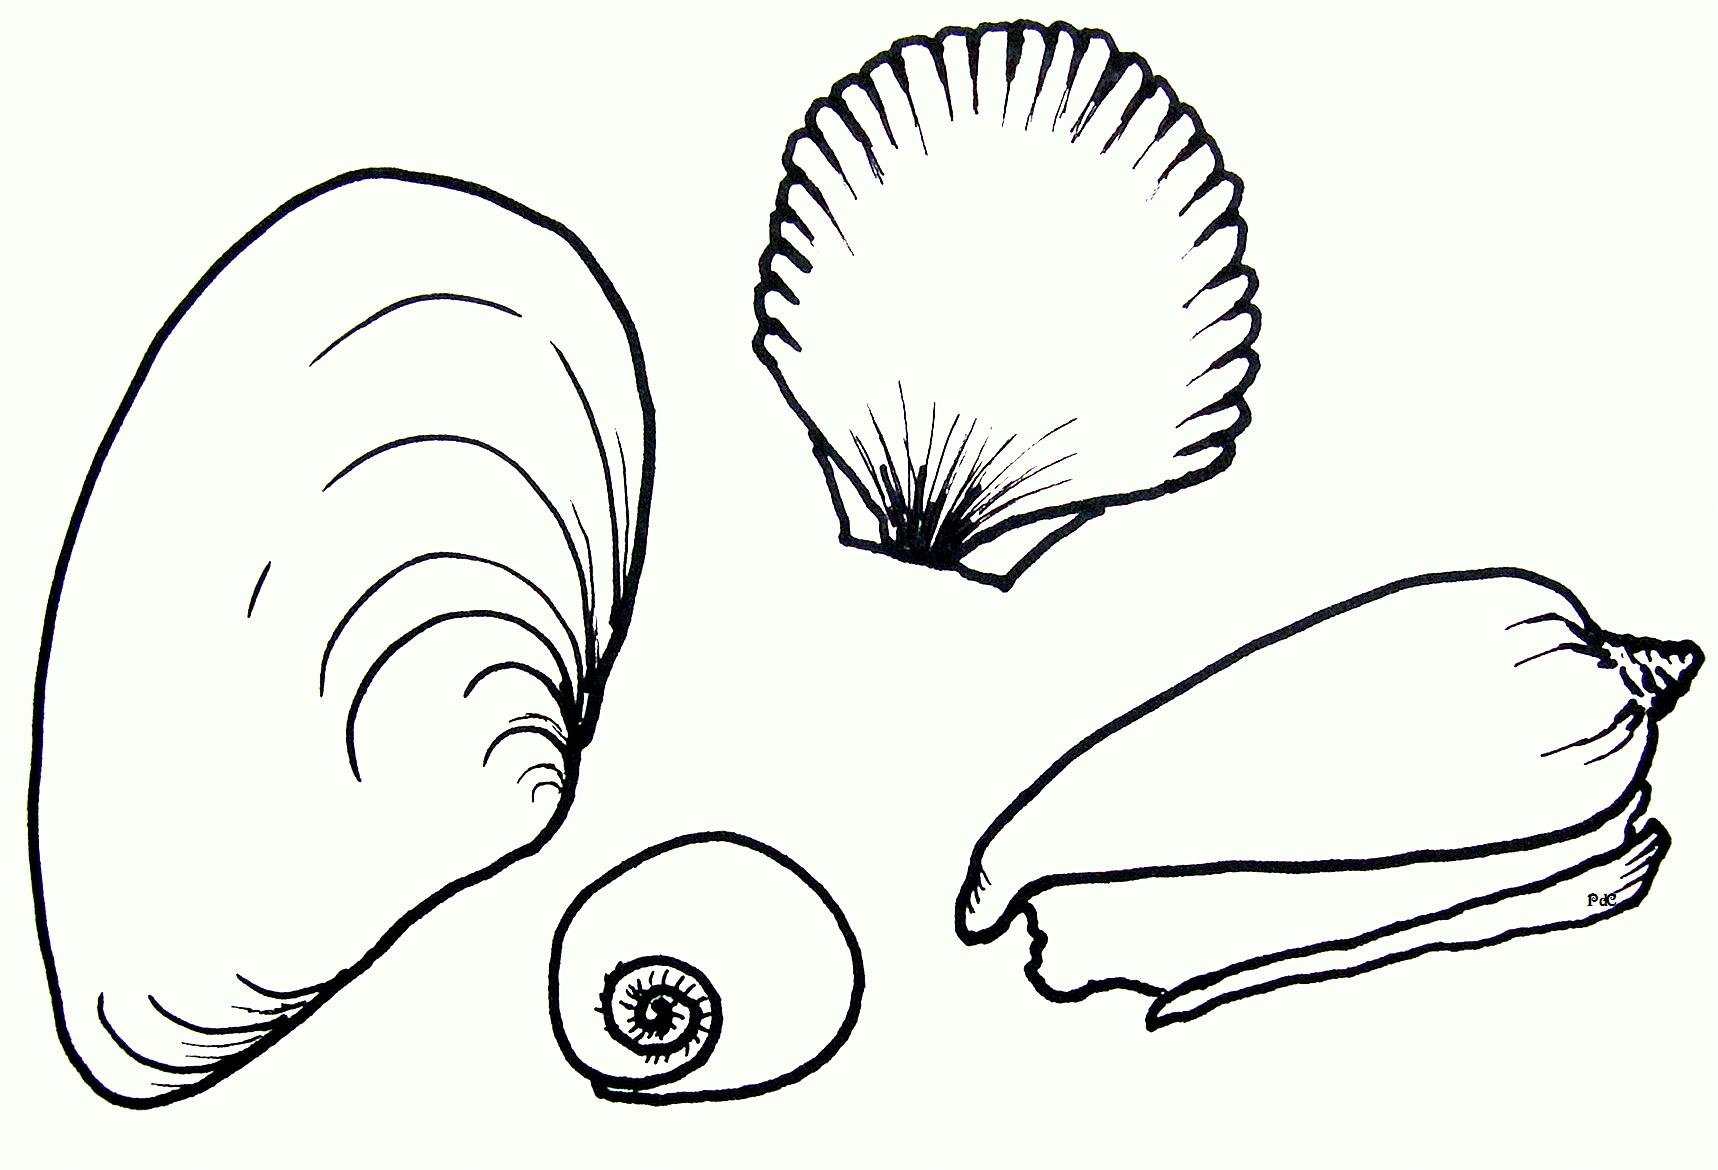 Artwork Seashells Drawing Pdc Seashells By Millhill